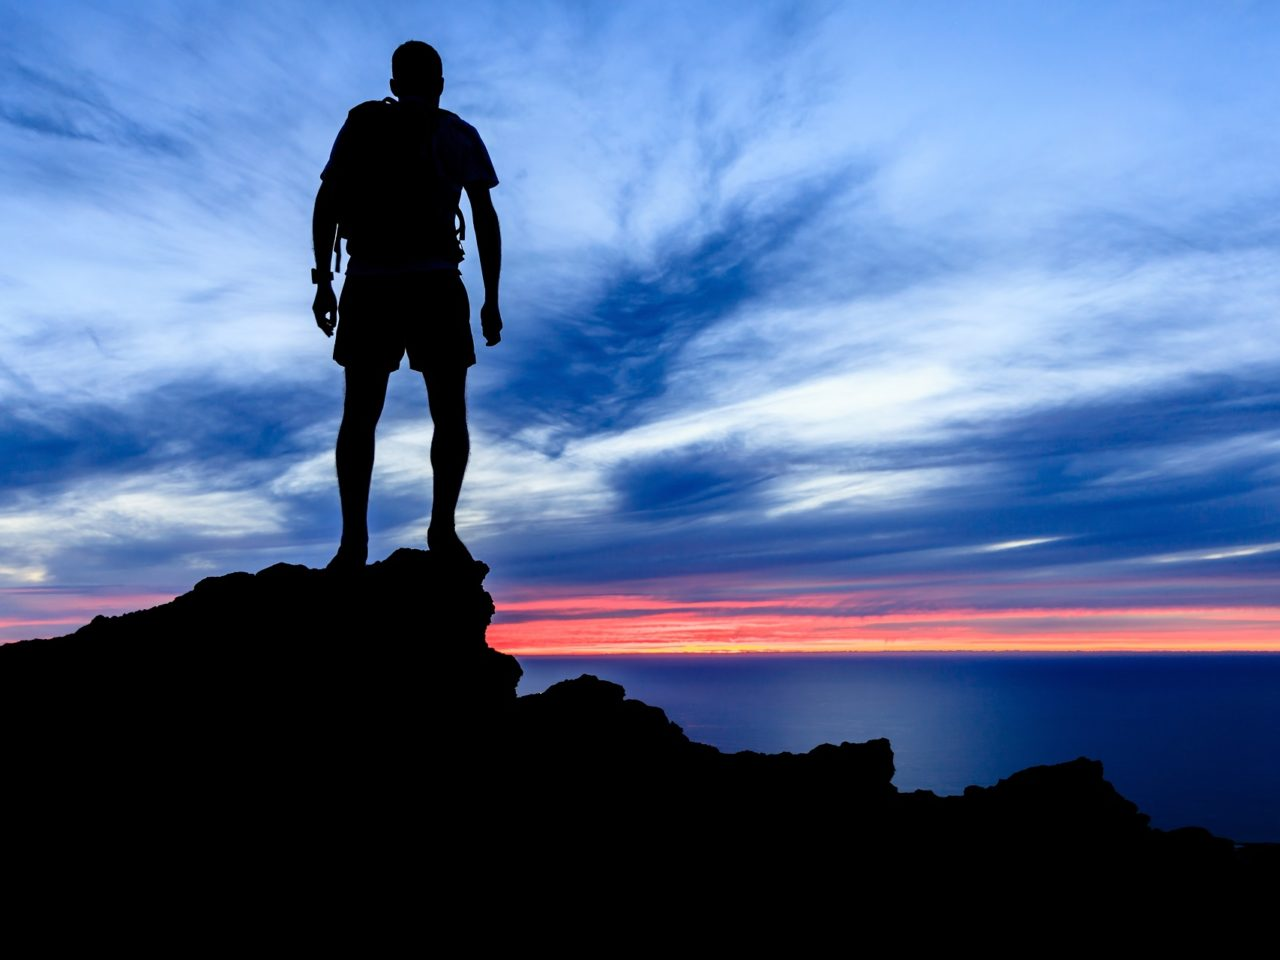 Man hiking silhouette in mountains, sunset and ocean over beautiful blue sky. Male hiker walking on top of mountain looking at beauty night landscape.